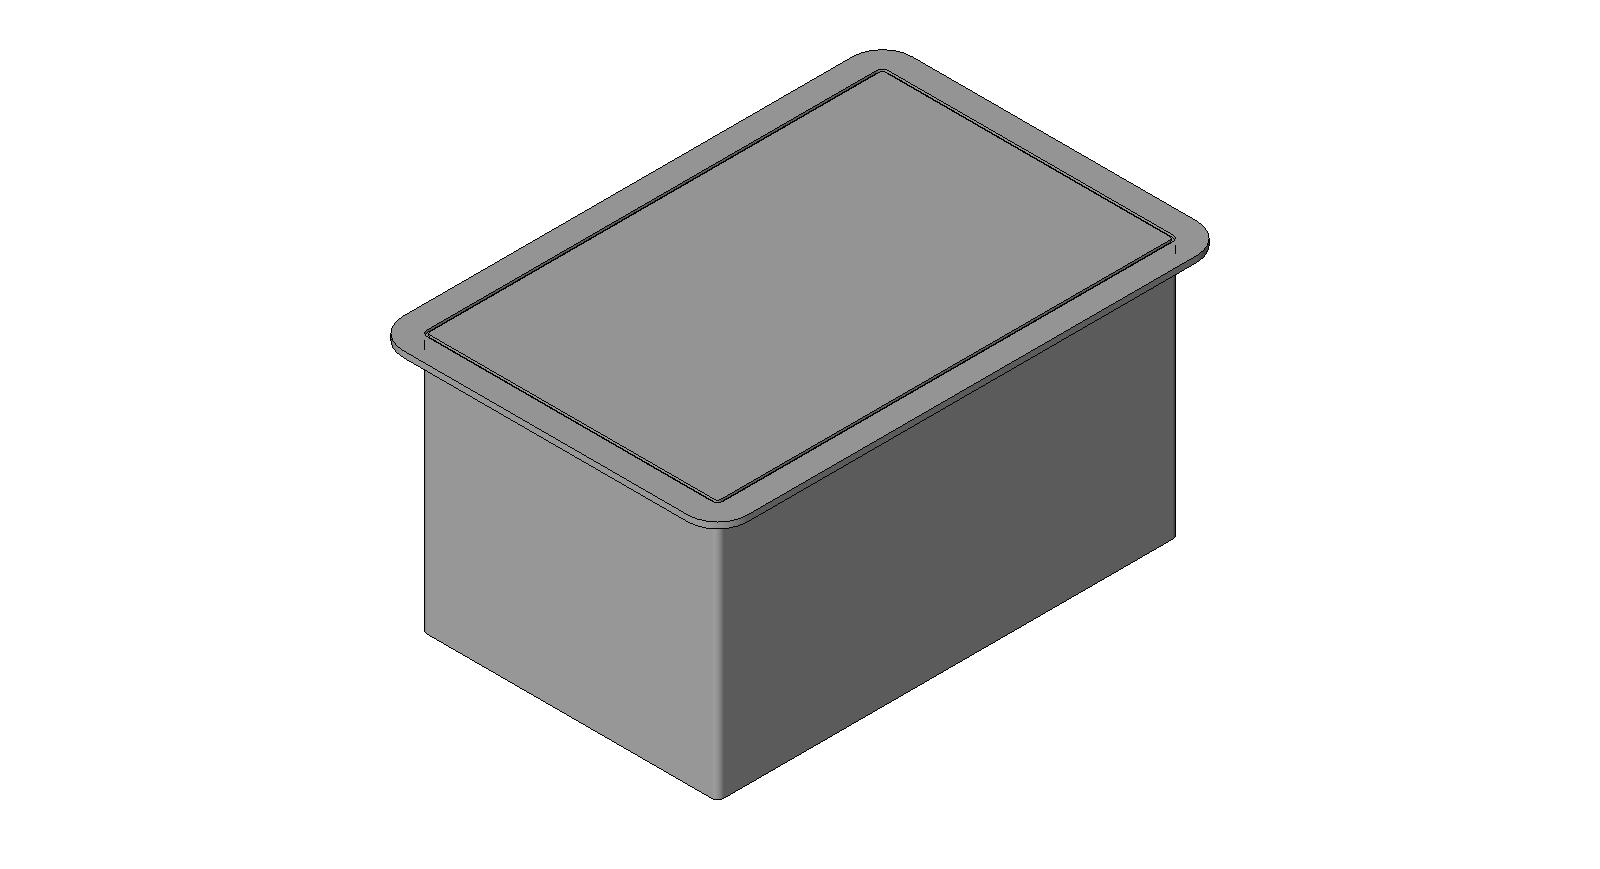 BIM Objects / Families :: Electrical Devices: Electrical Boxes ...